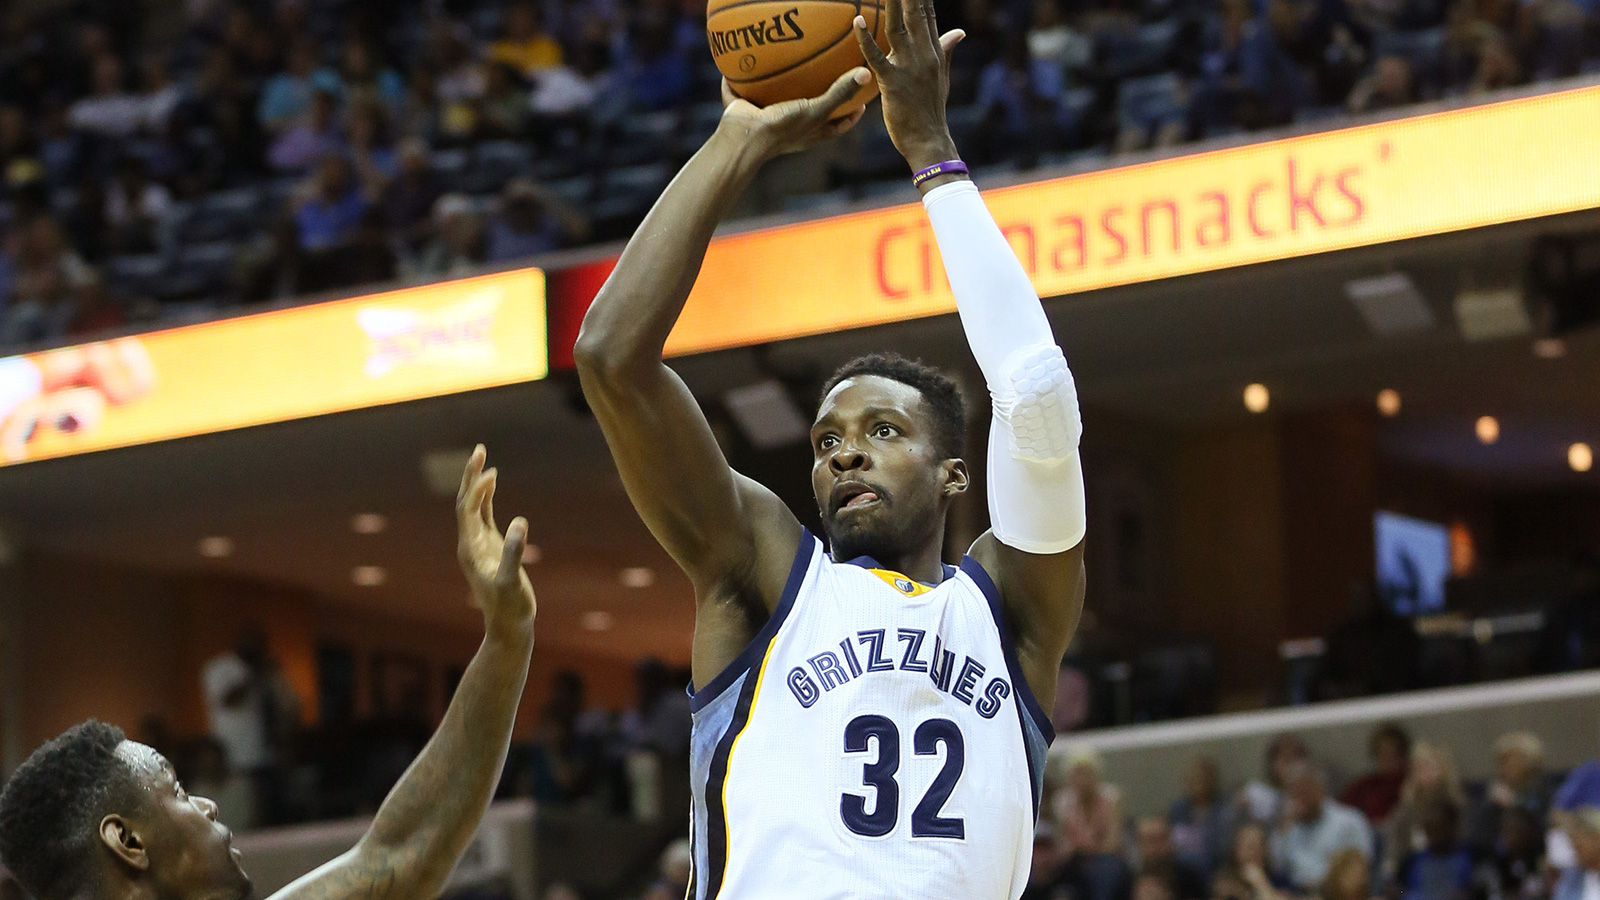 Grizzlies won't join 3-point revolution, but could become bigger threat